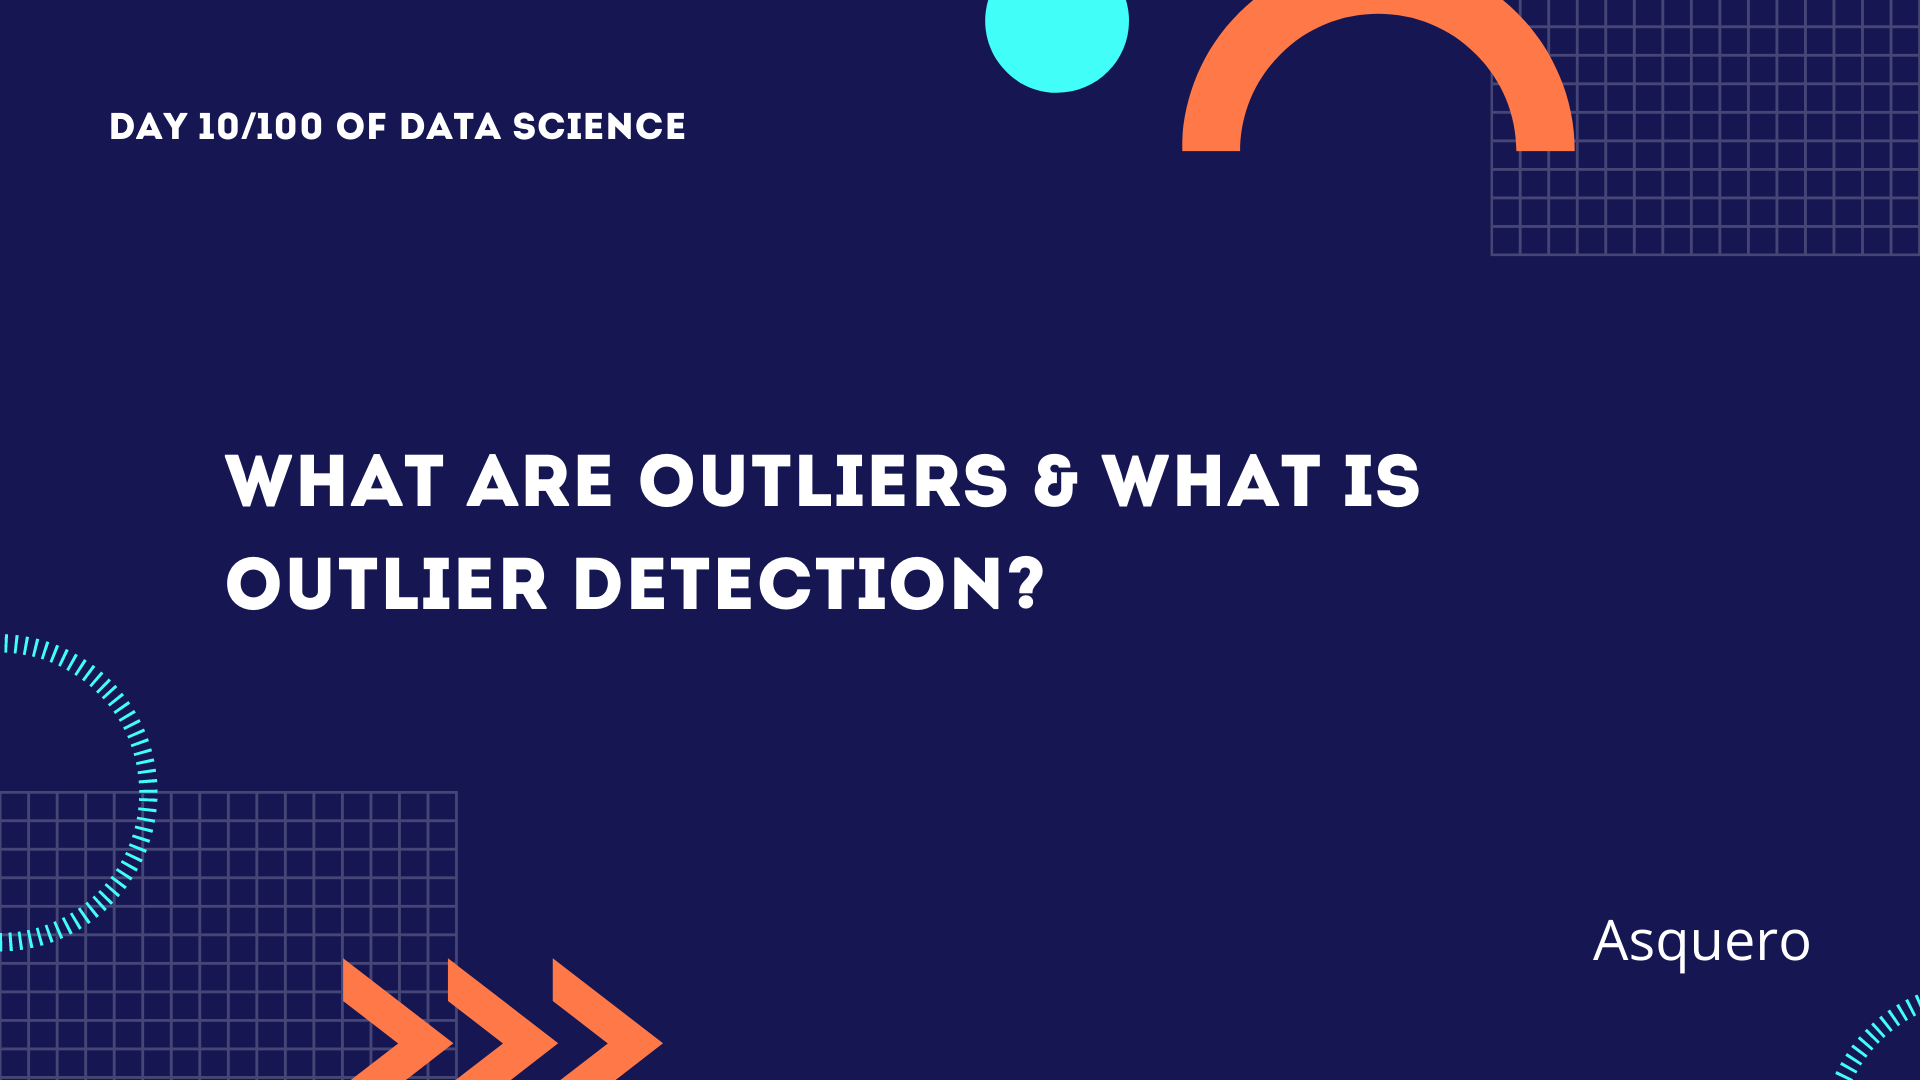 What are Outliers & What is Outlier Detection?